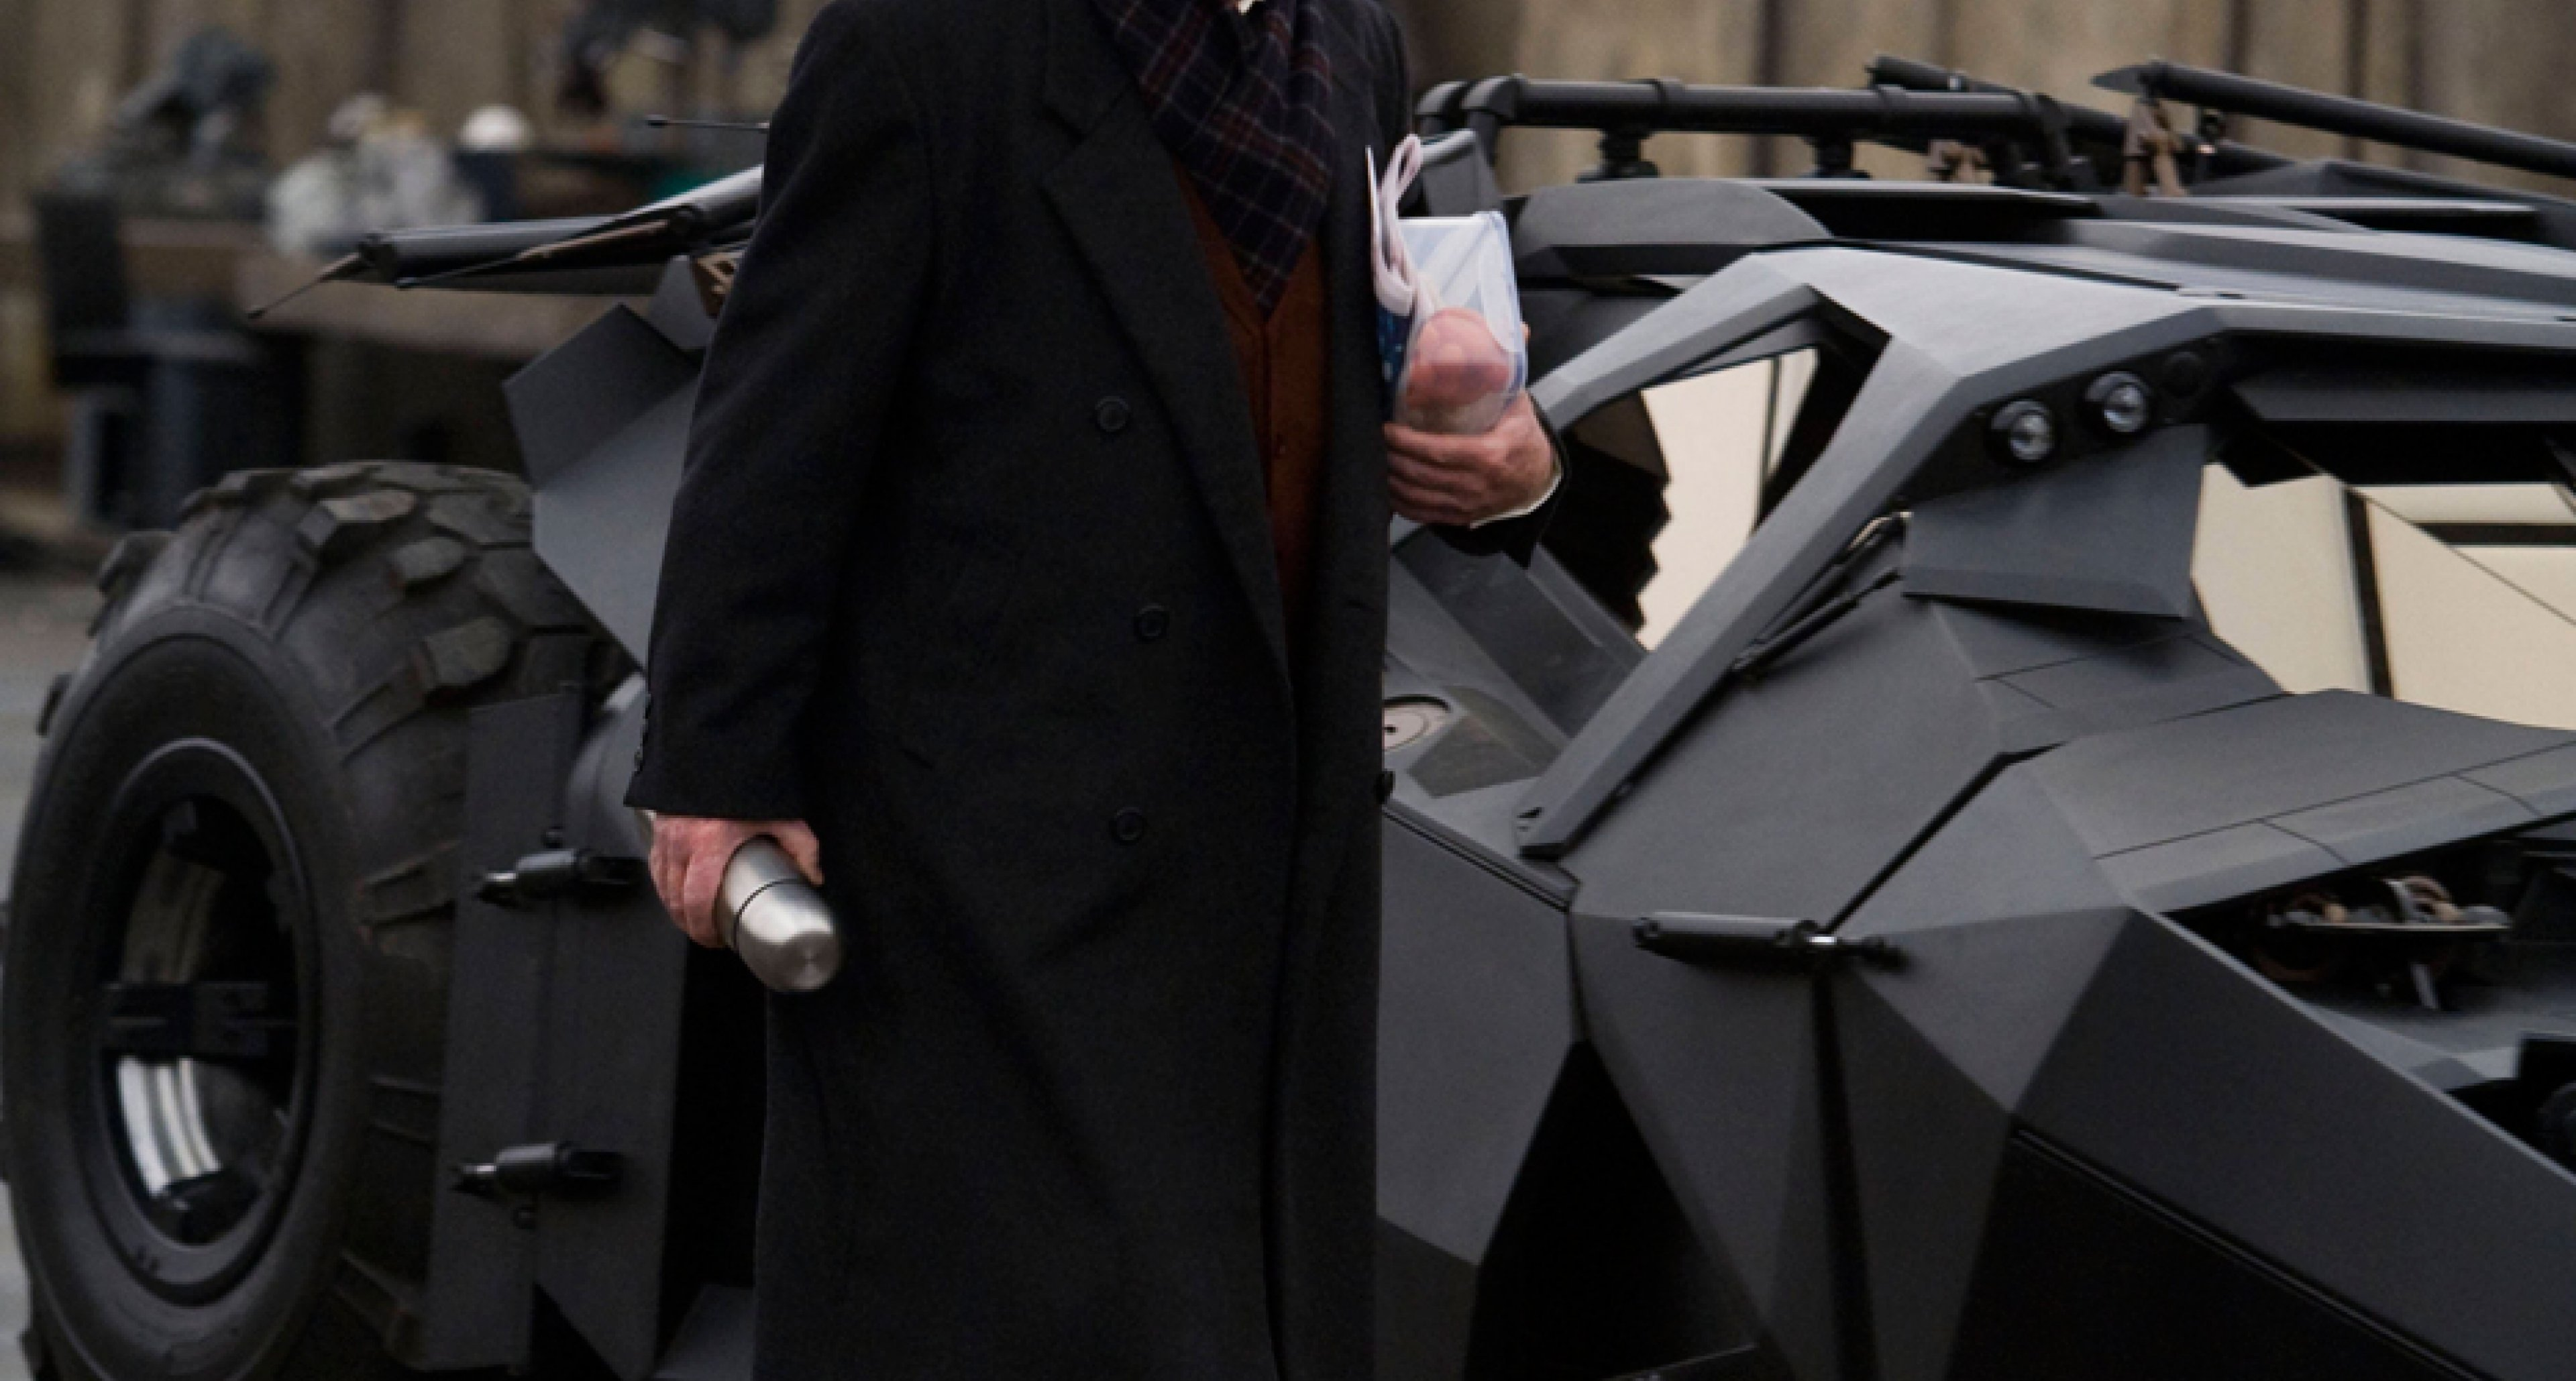 Michael Caine as butler Alfred Pennyworth, preparing the Batmobile for 'The Dark Knight Rises' (2012).